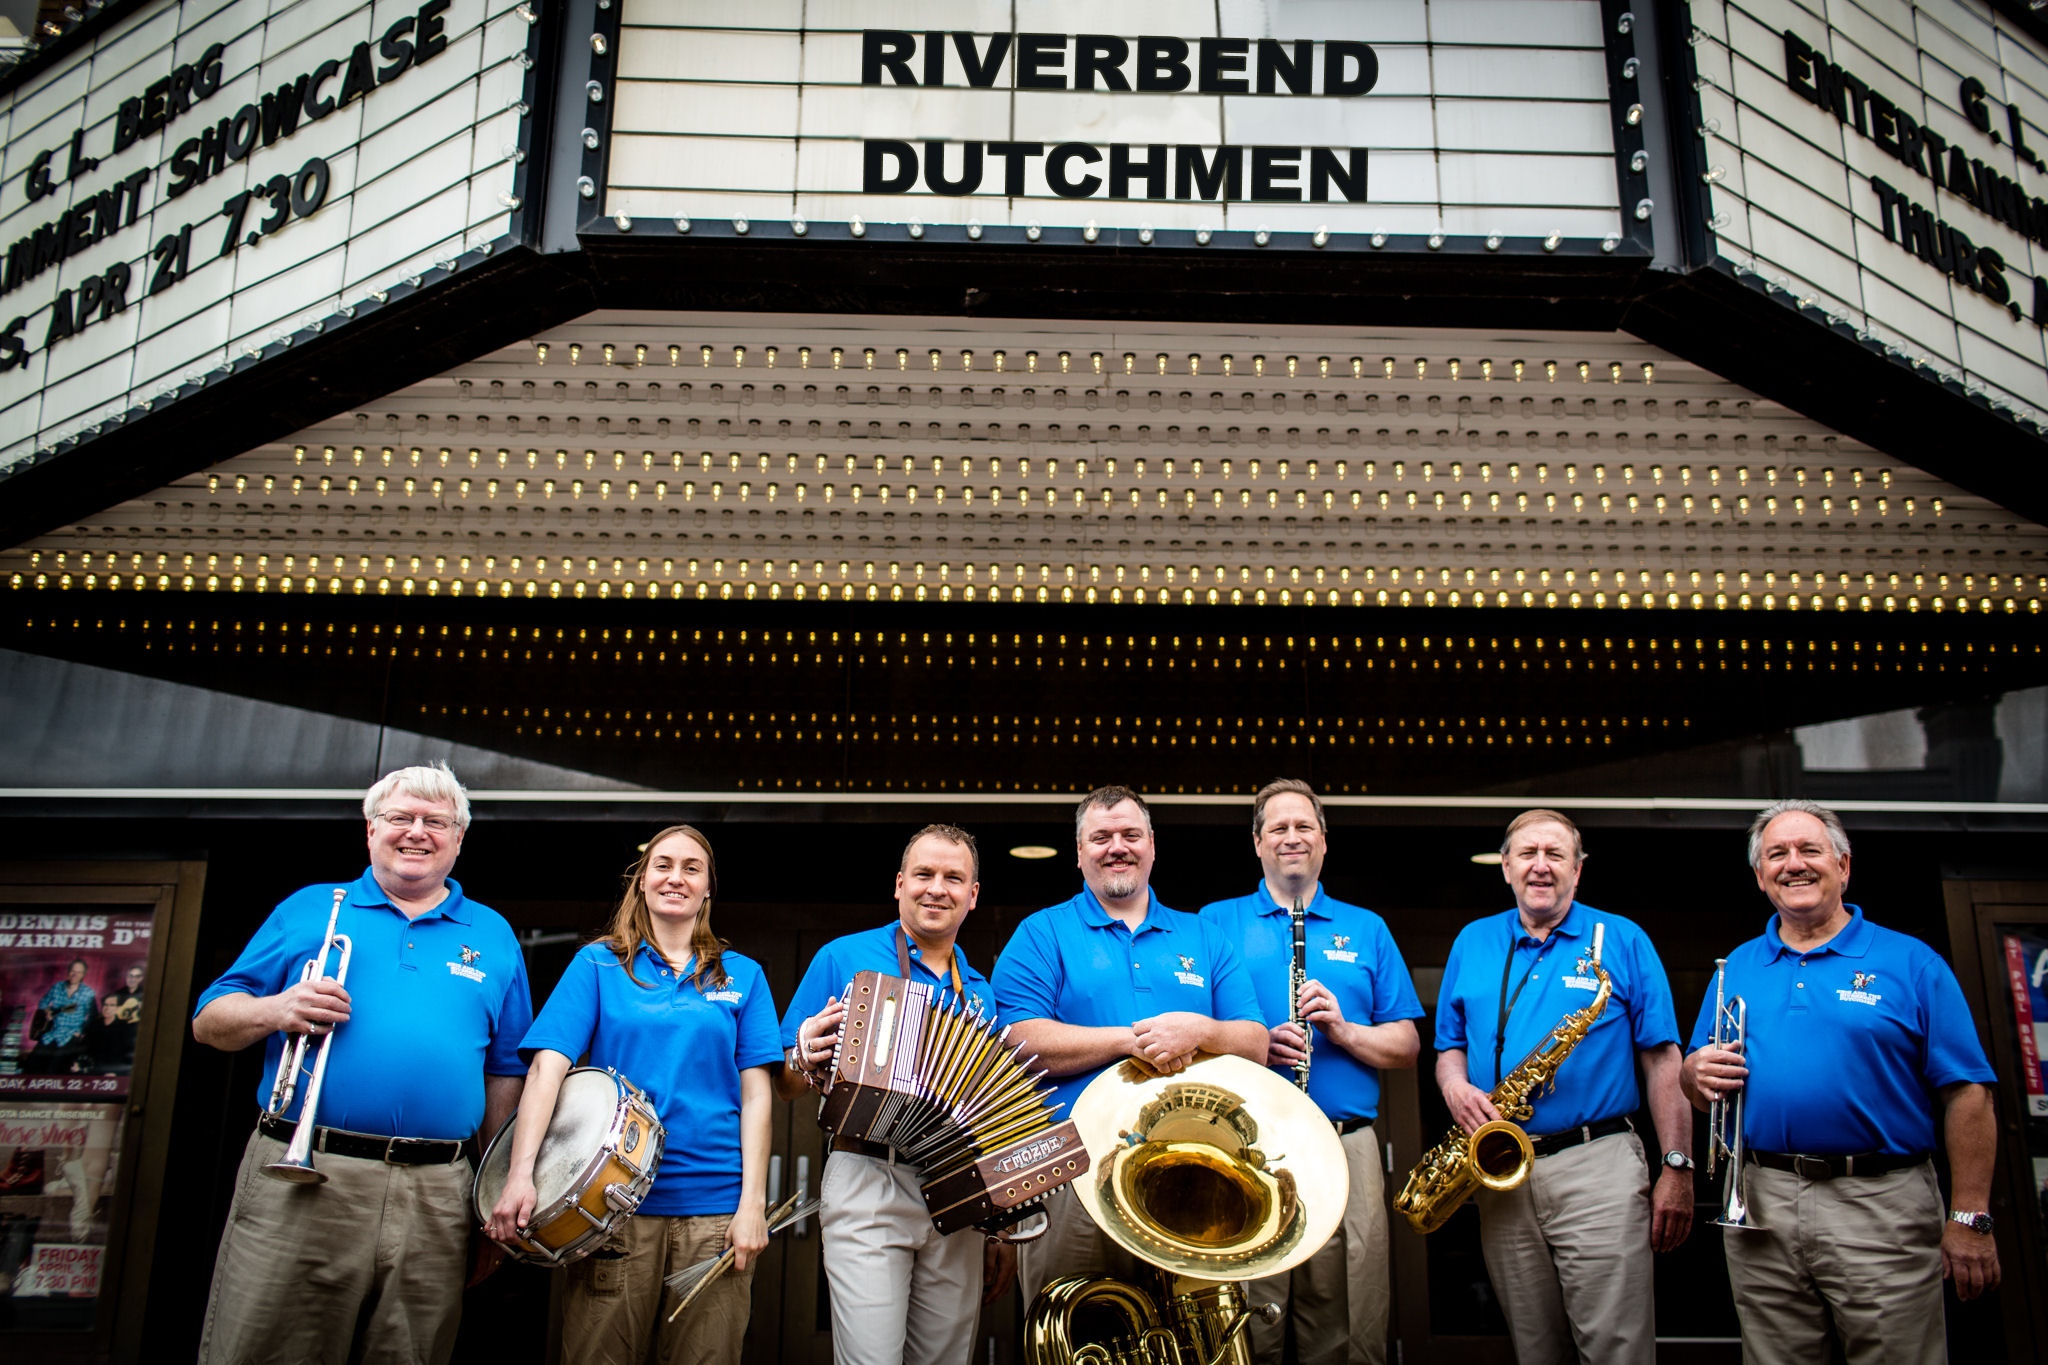 Riverbend Dutchmen-livemusic-wowzone